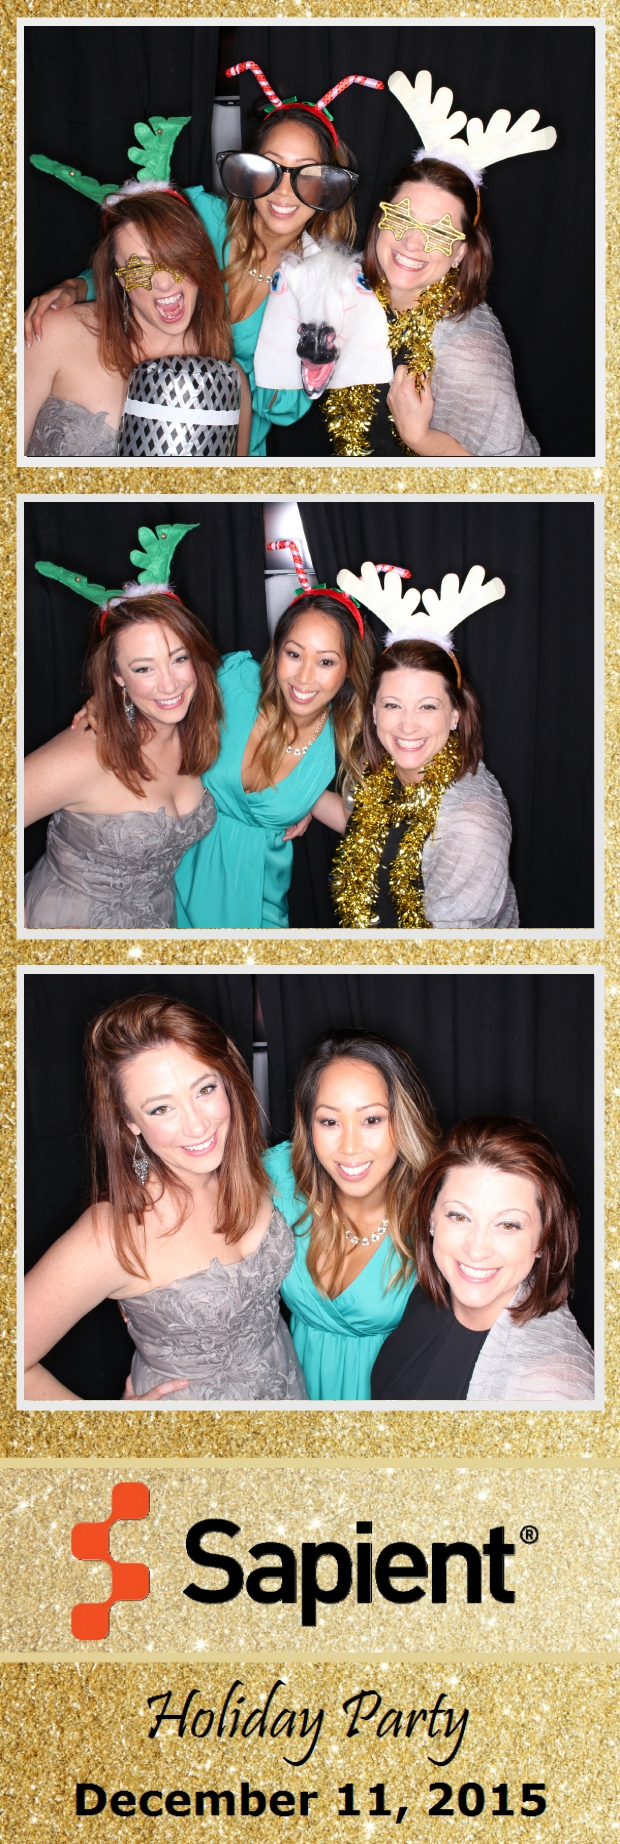 Guest House Events Photo Booth Sapient Holiday Party (27).jpg